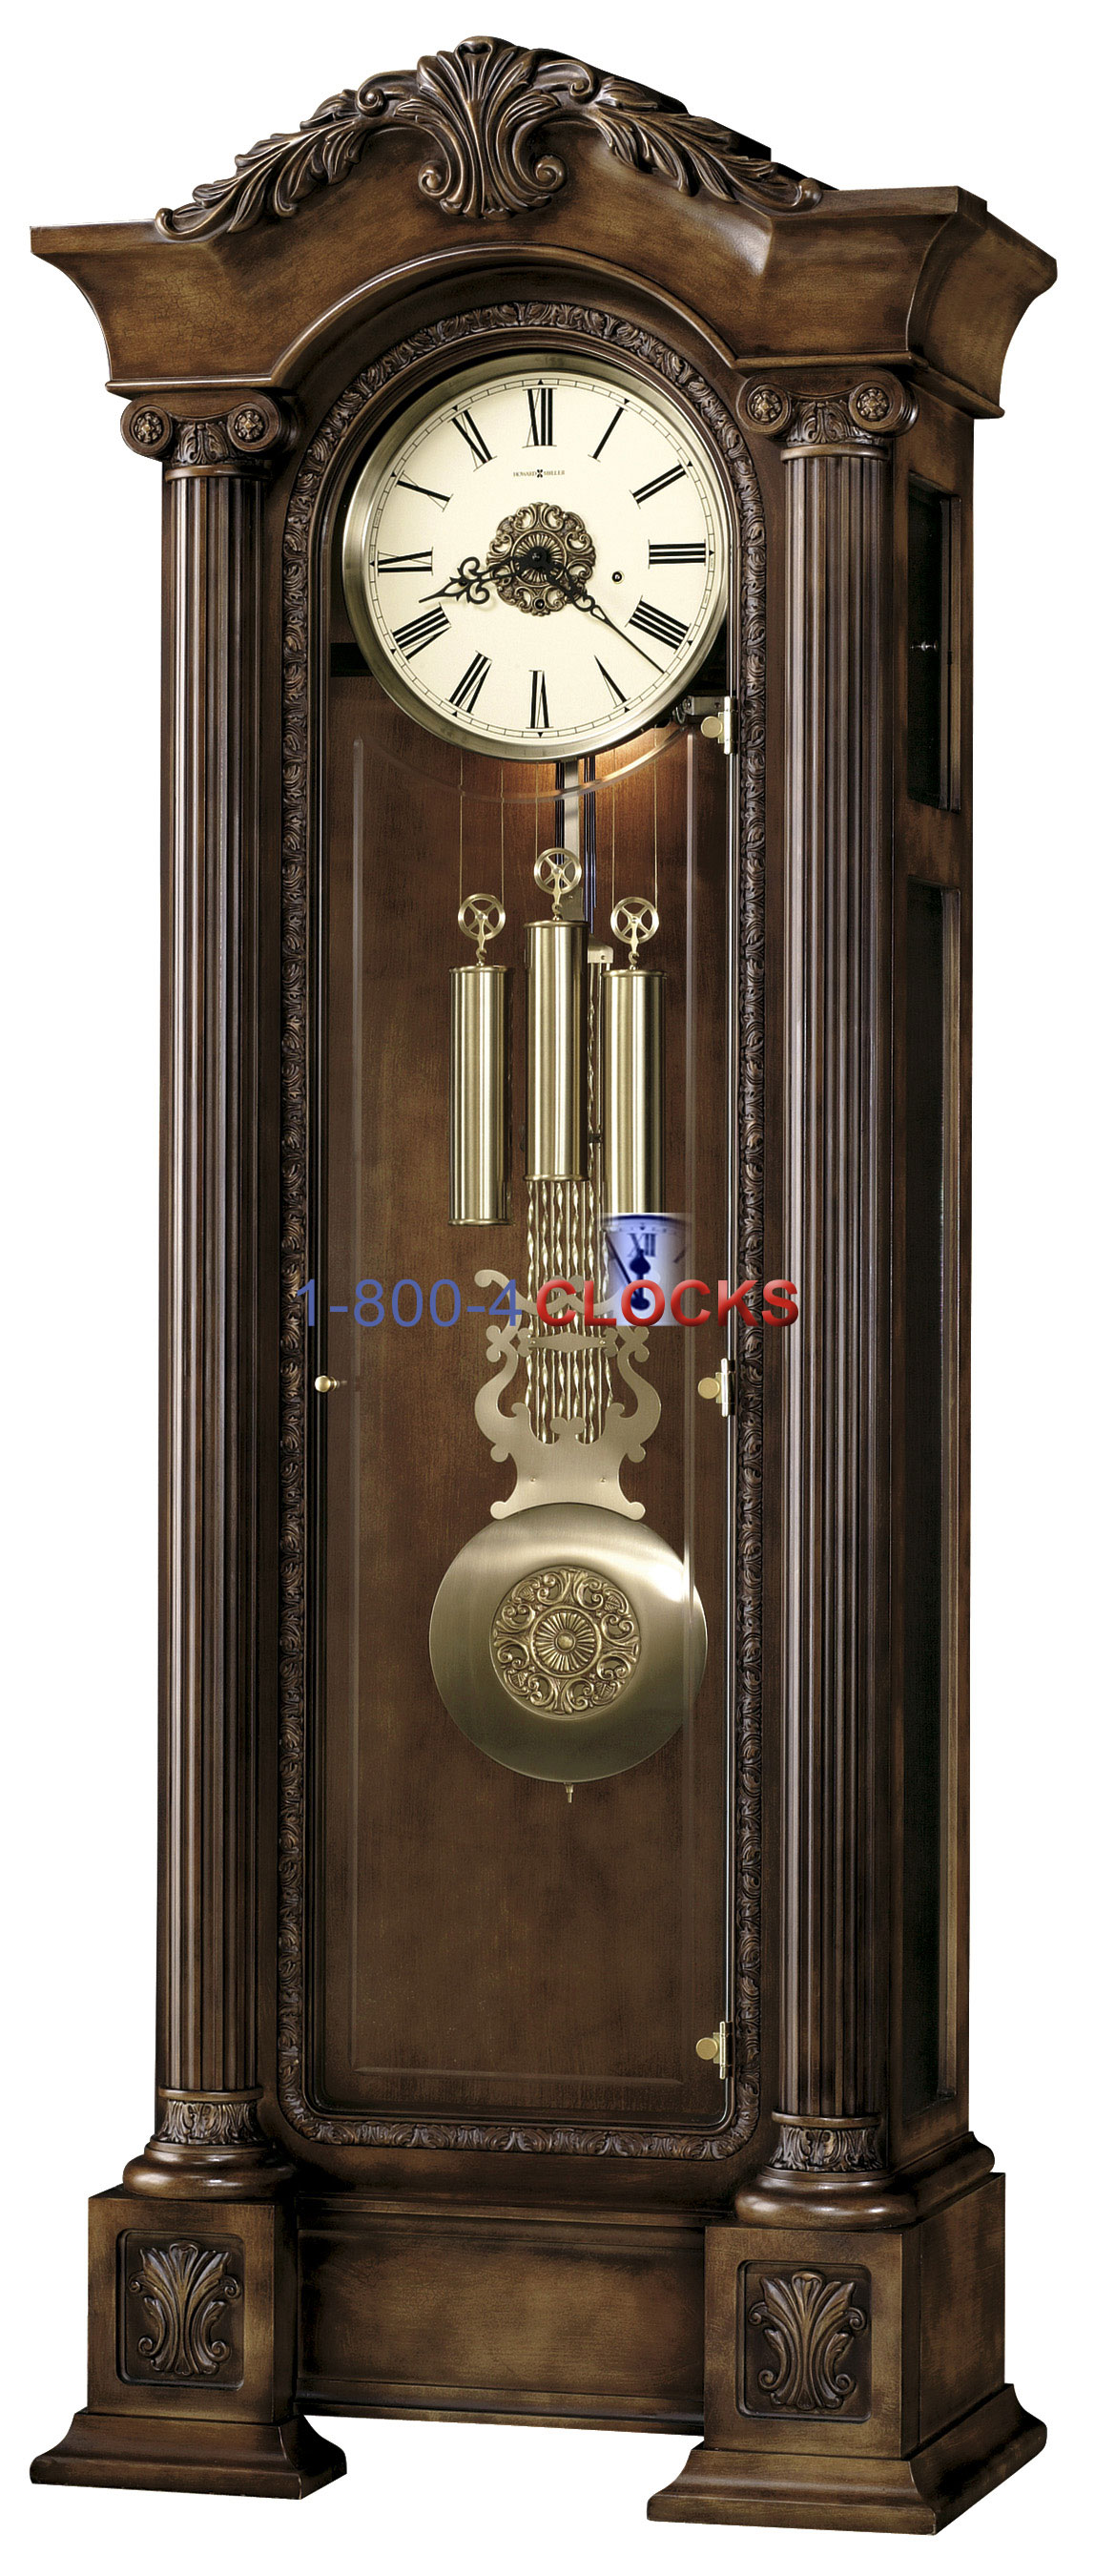 New York And Company Credit Card Payment >> Howard Miller Chatham II Grandfather Clock at 1-800 ...